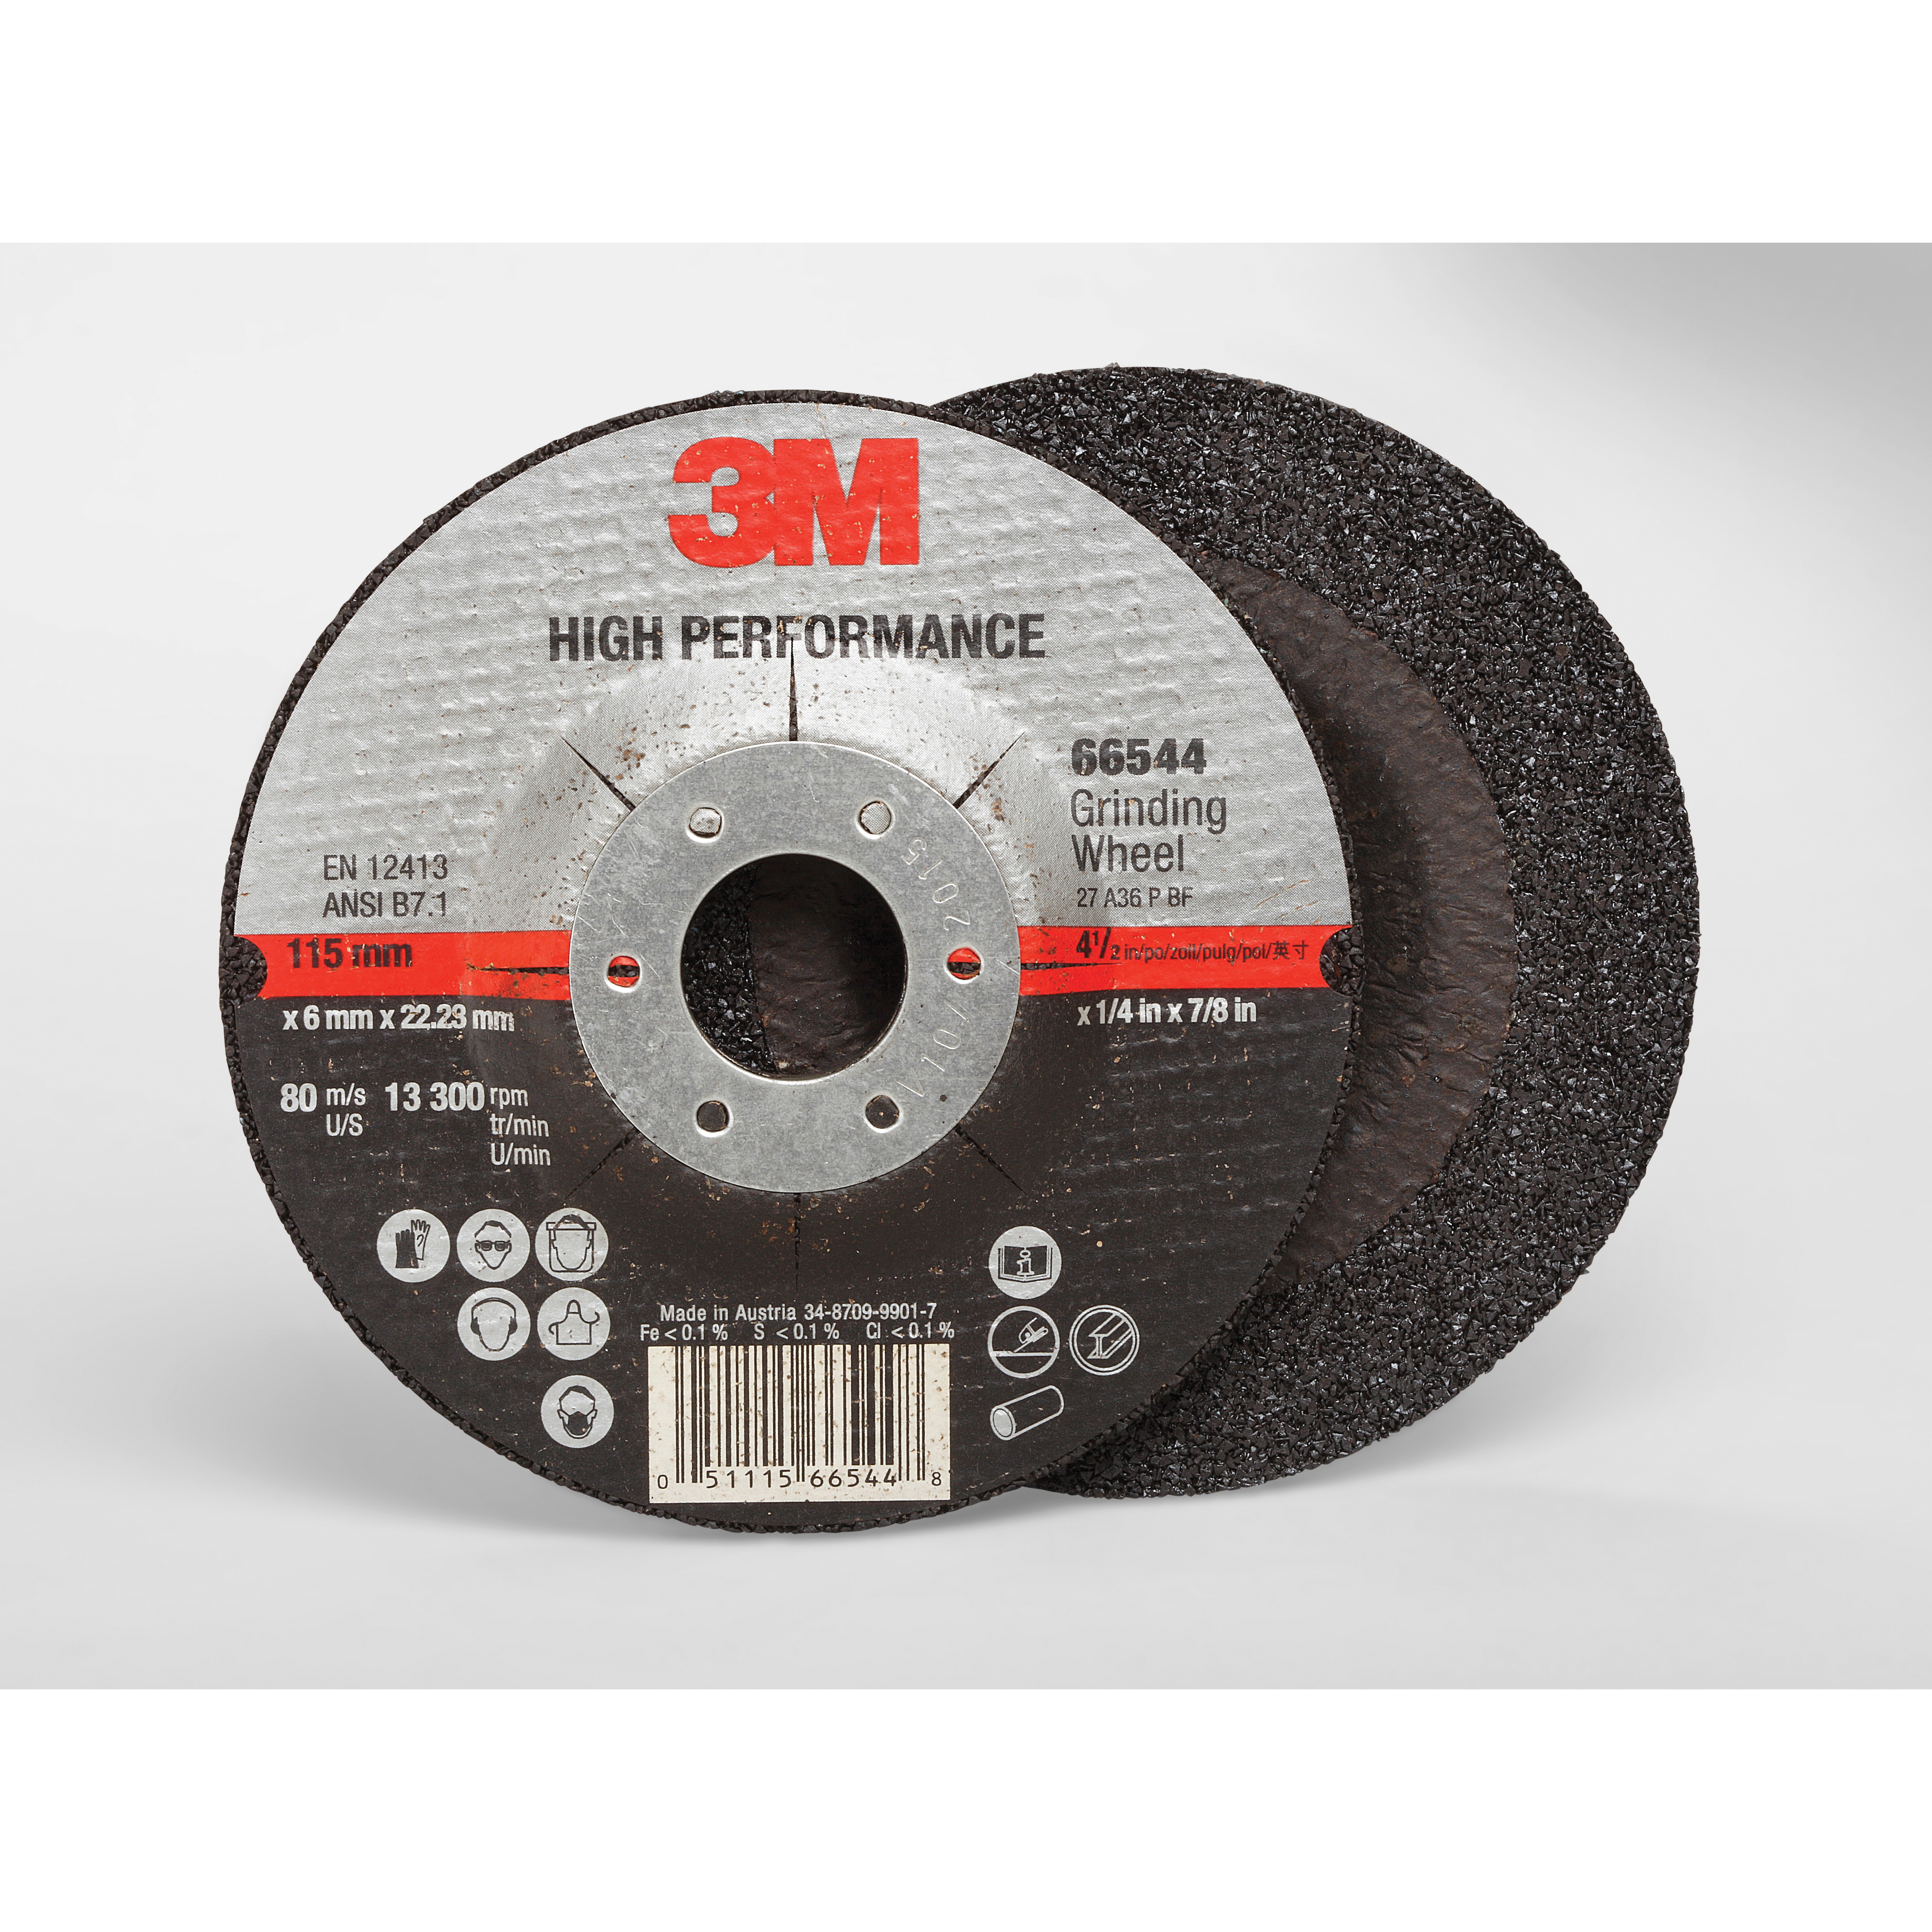 Cubitron™ II 051115-66537 COW Type 27 Cut-Off Wheel, 5 in Dia x 0.045 in THK, 7/8 in Center Hole, 60 Grit, Precision Shaped Ceramic Abrasive